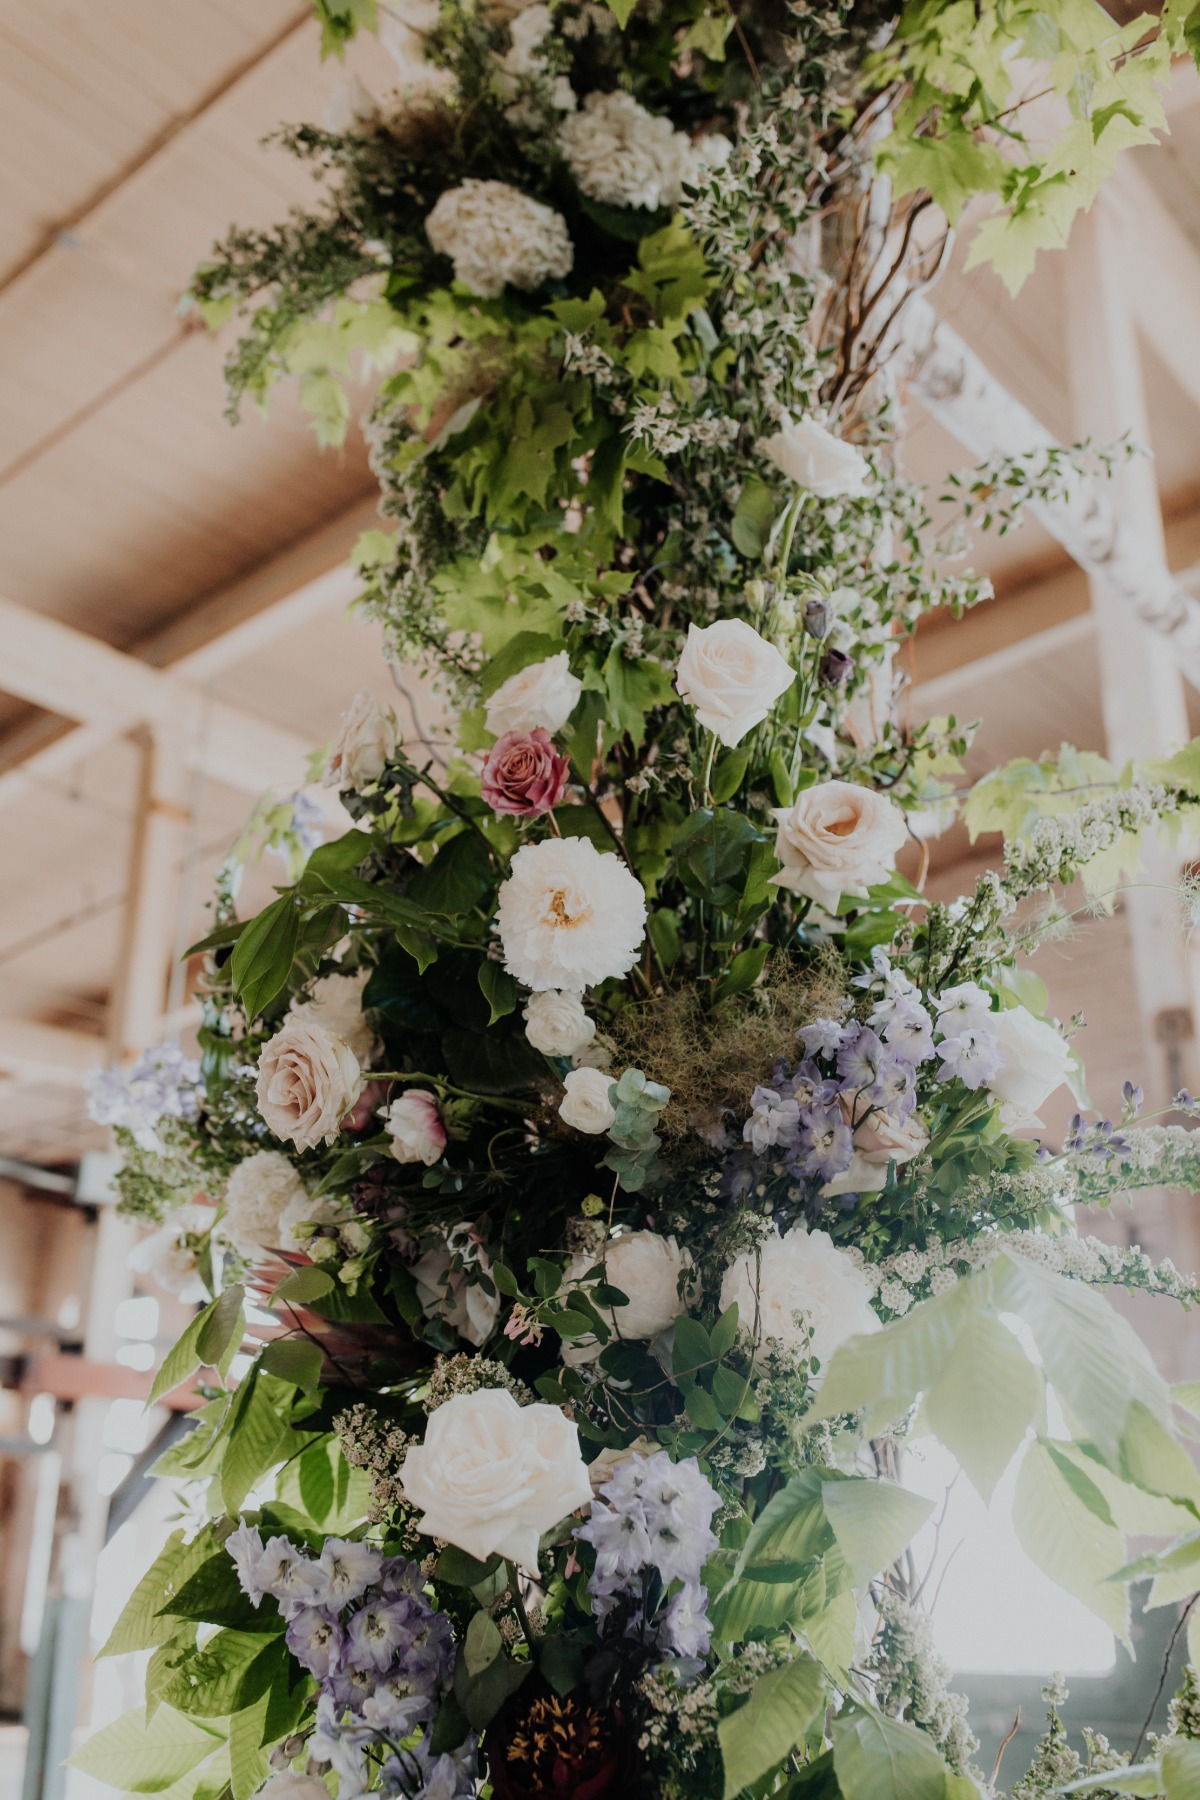 ceremony wedding florals designed by Apotheca Flowers